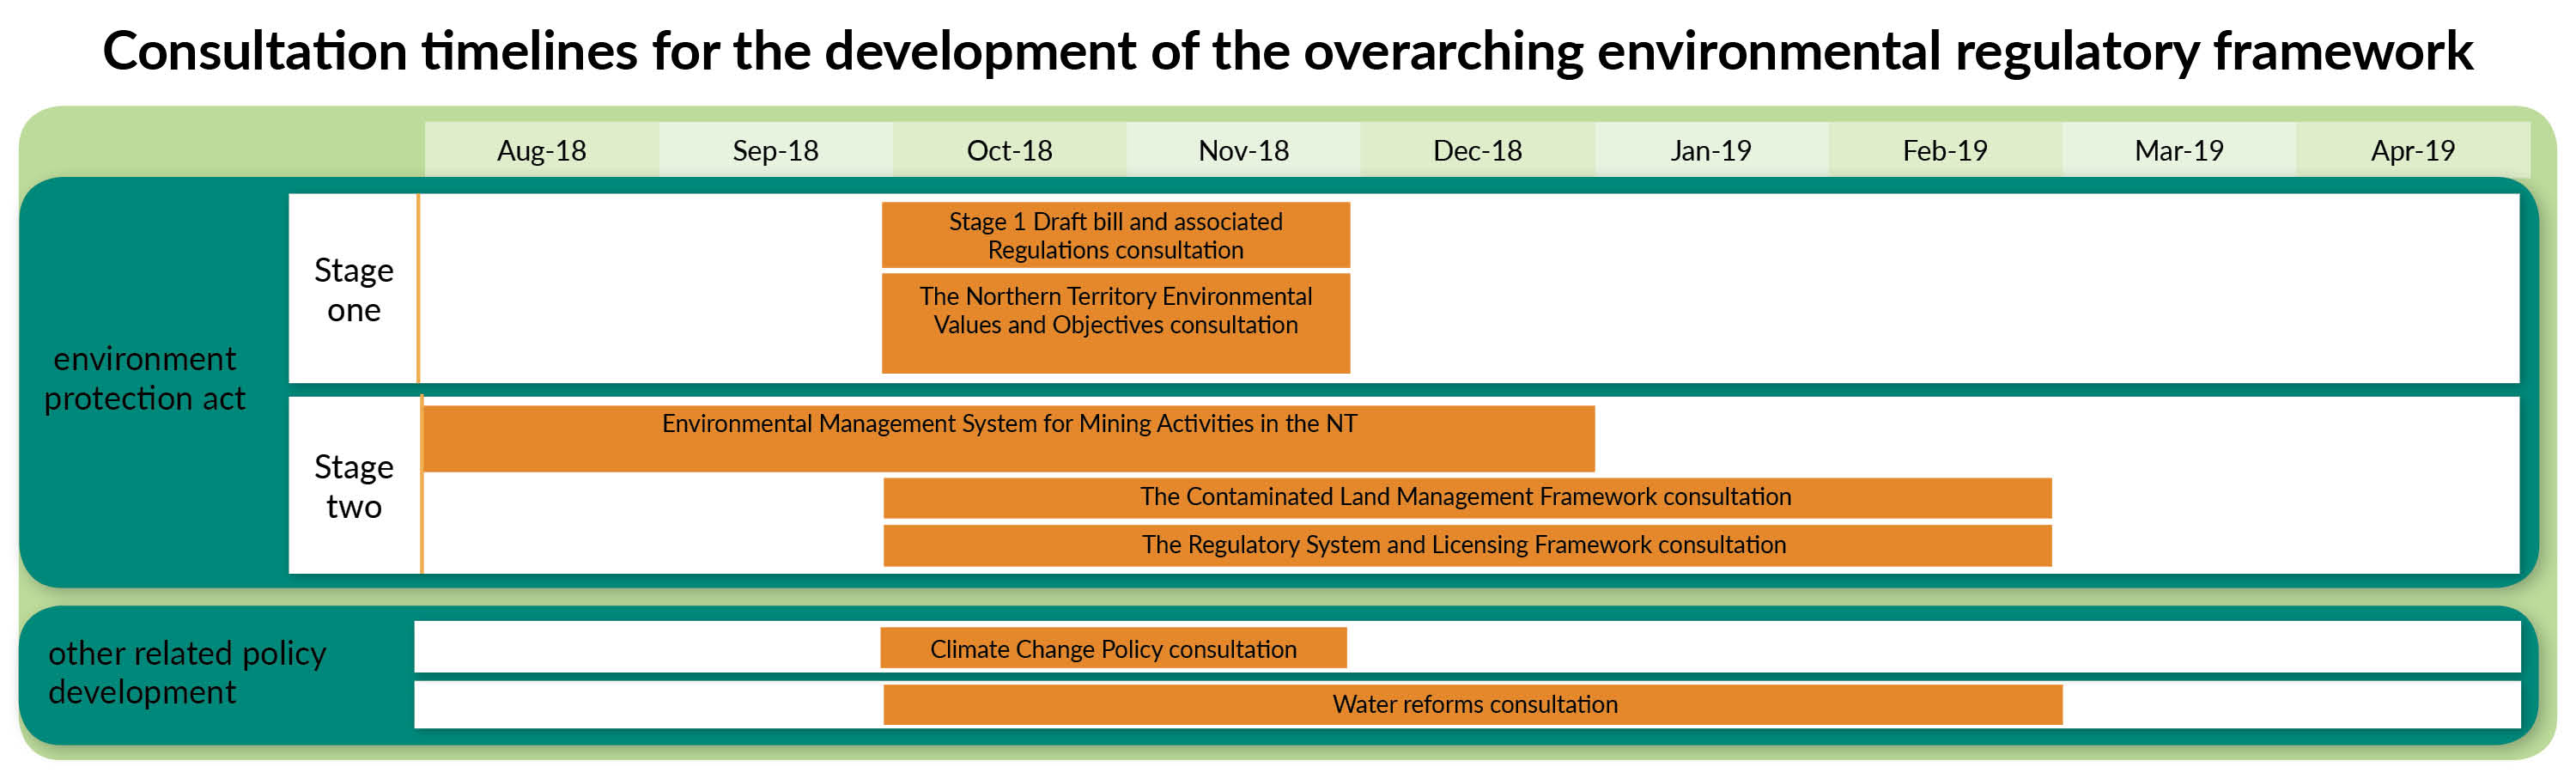 Environmental regulatory reform timeline